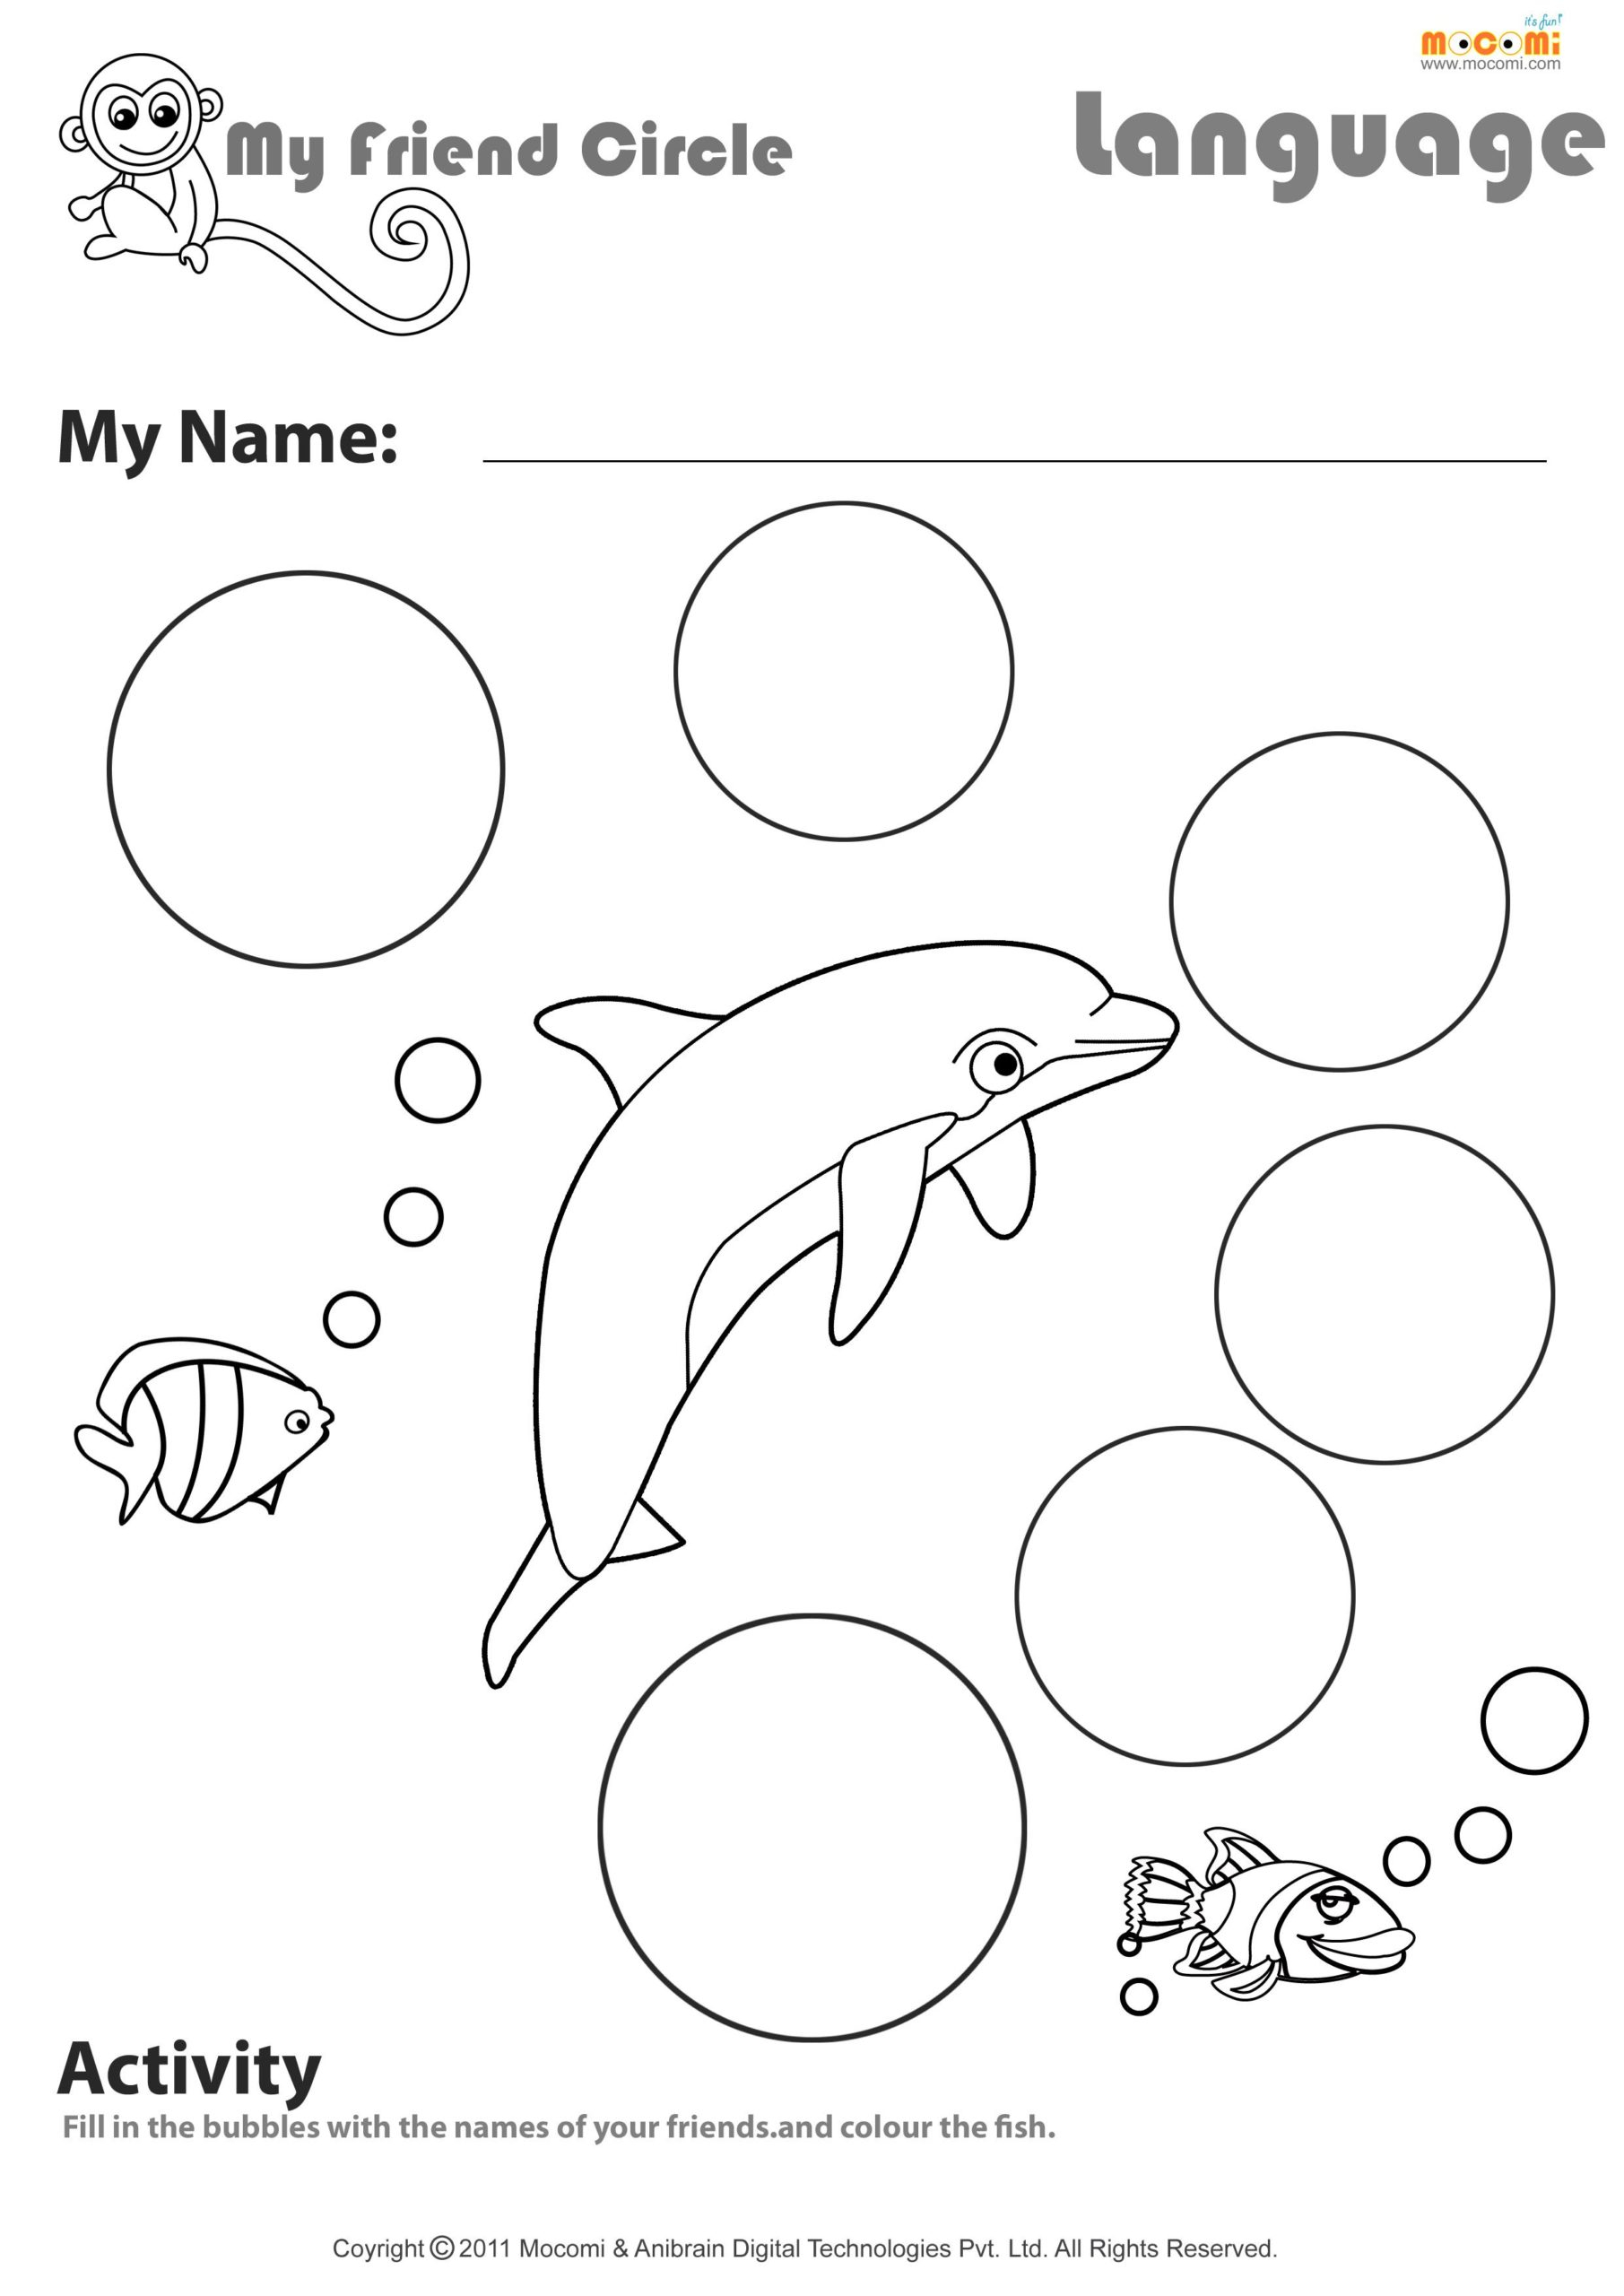 My Friend Circle English Worksheet For Kids Worksheets within Letter T Worksheets School Sparks